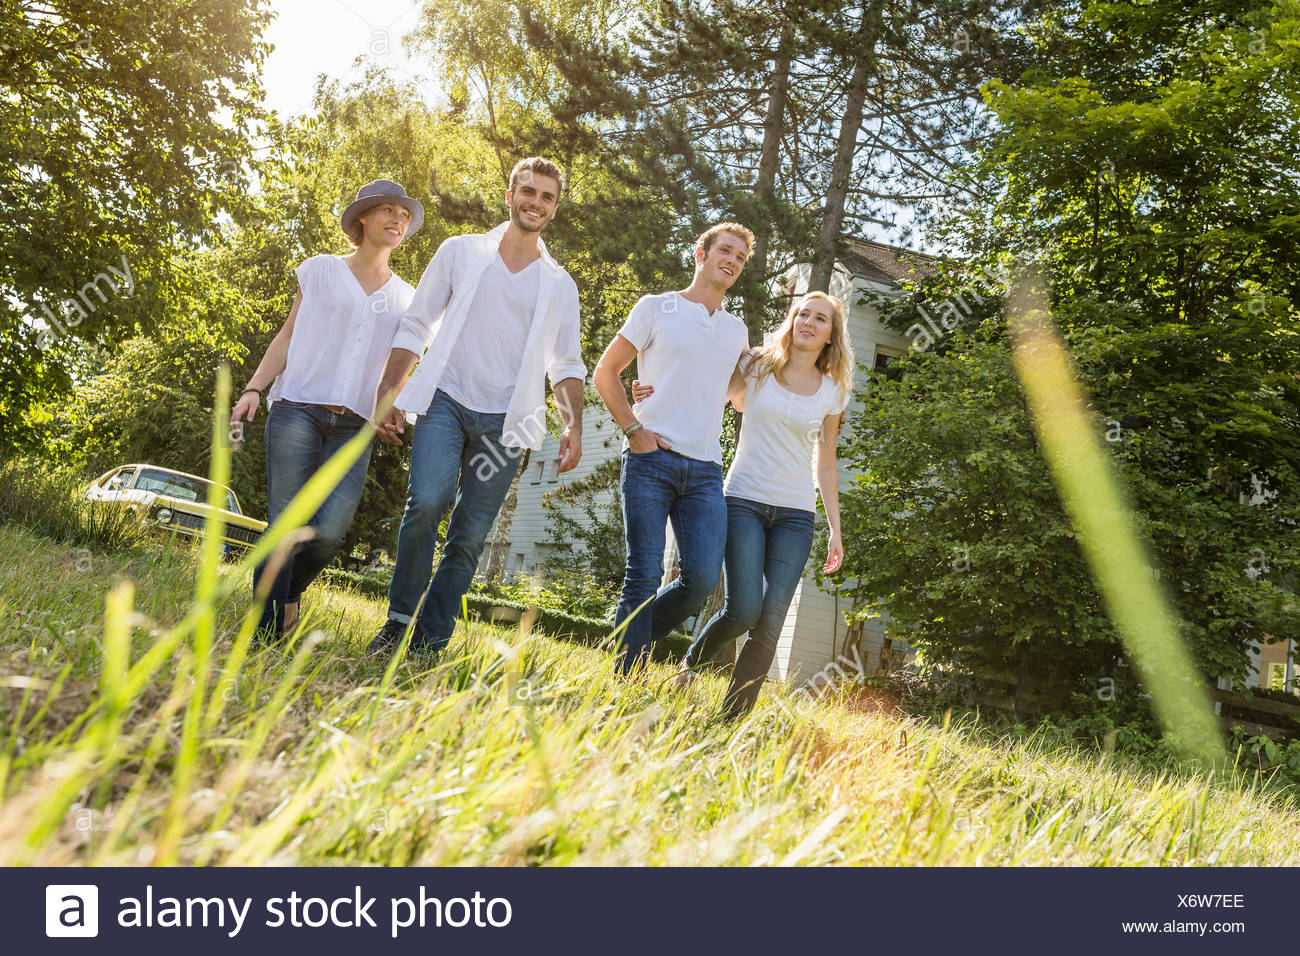 Group of people walking through forest - Stock Image